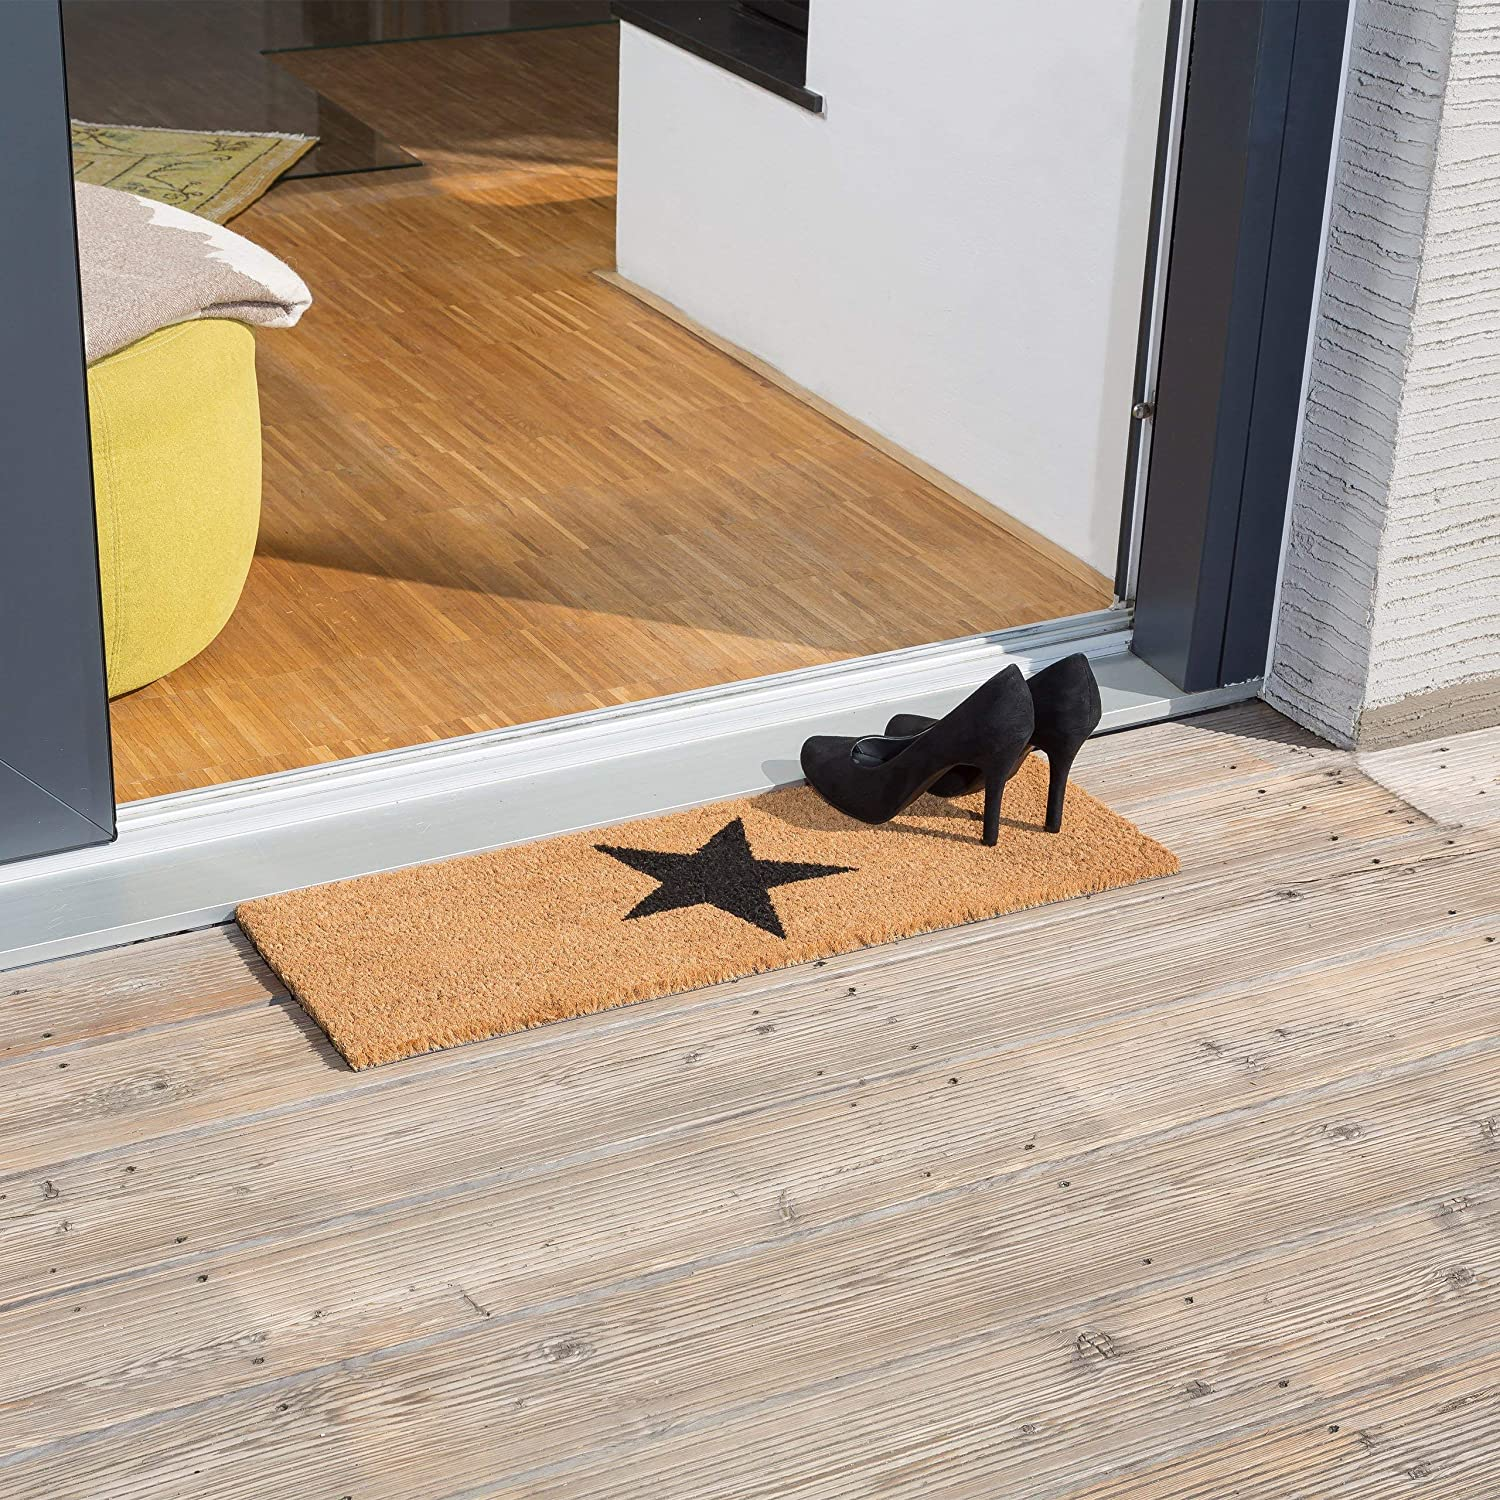 Relaxdays Narrow Coir Doormat With Large Black Star For Indoors And Outdoors W Anti Slip Underside Long Welcome Mat 1 5 X 75 X 25 Cm Natural Brown Amazon Co Uk Kitchen Home